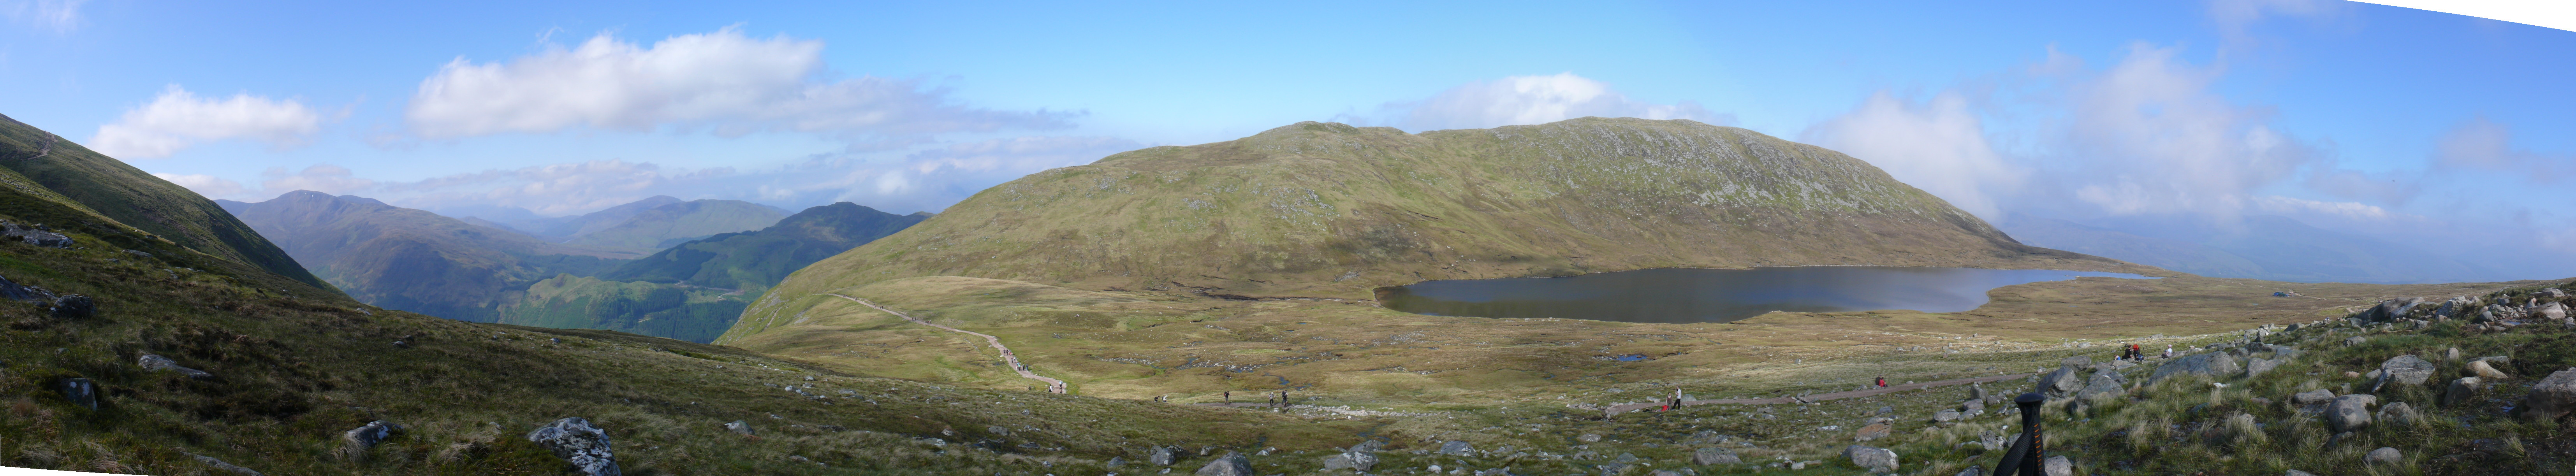 Lochan Meall an t-Suidhe from Ben Nevis path